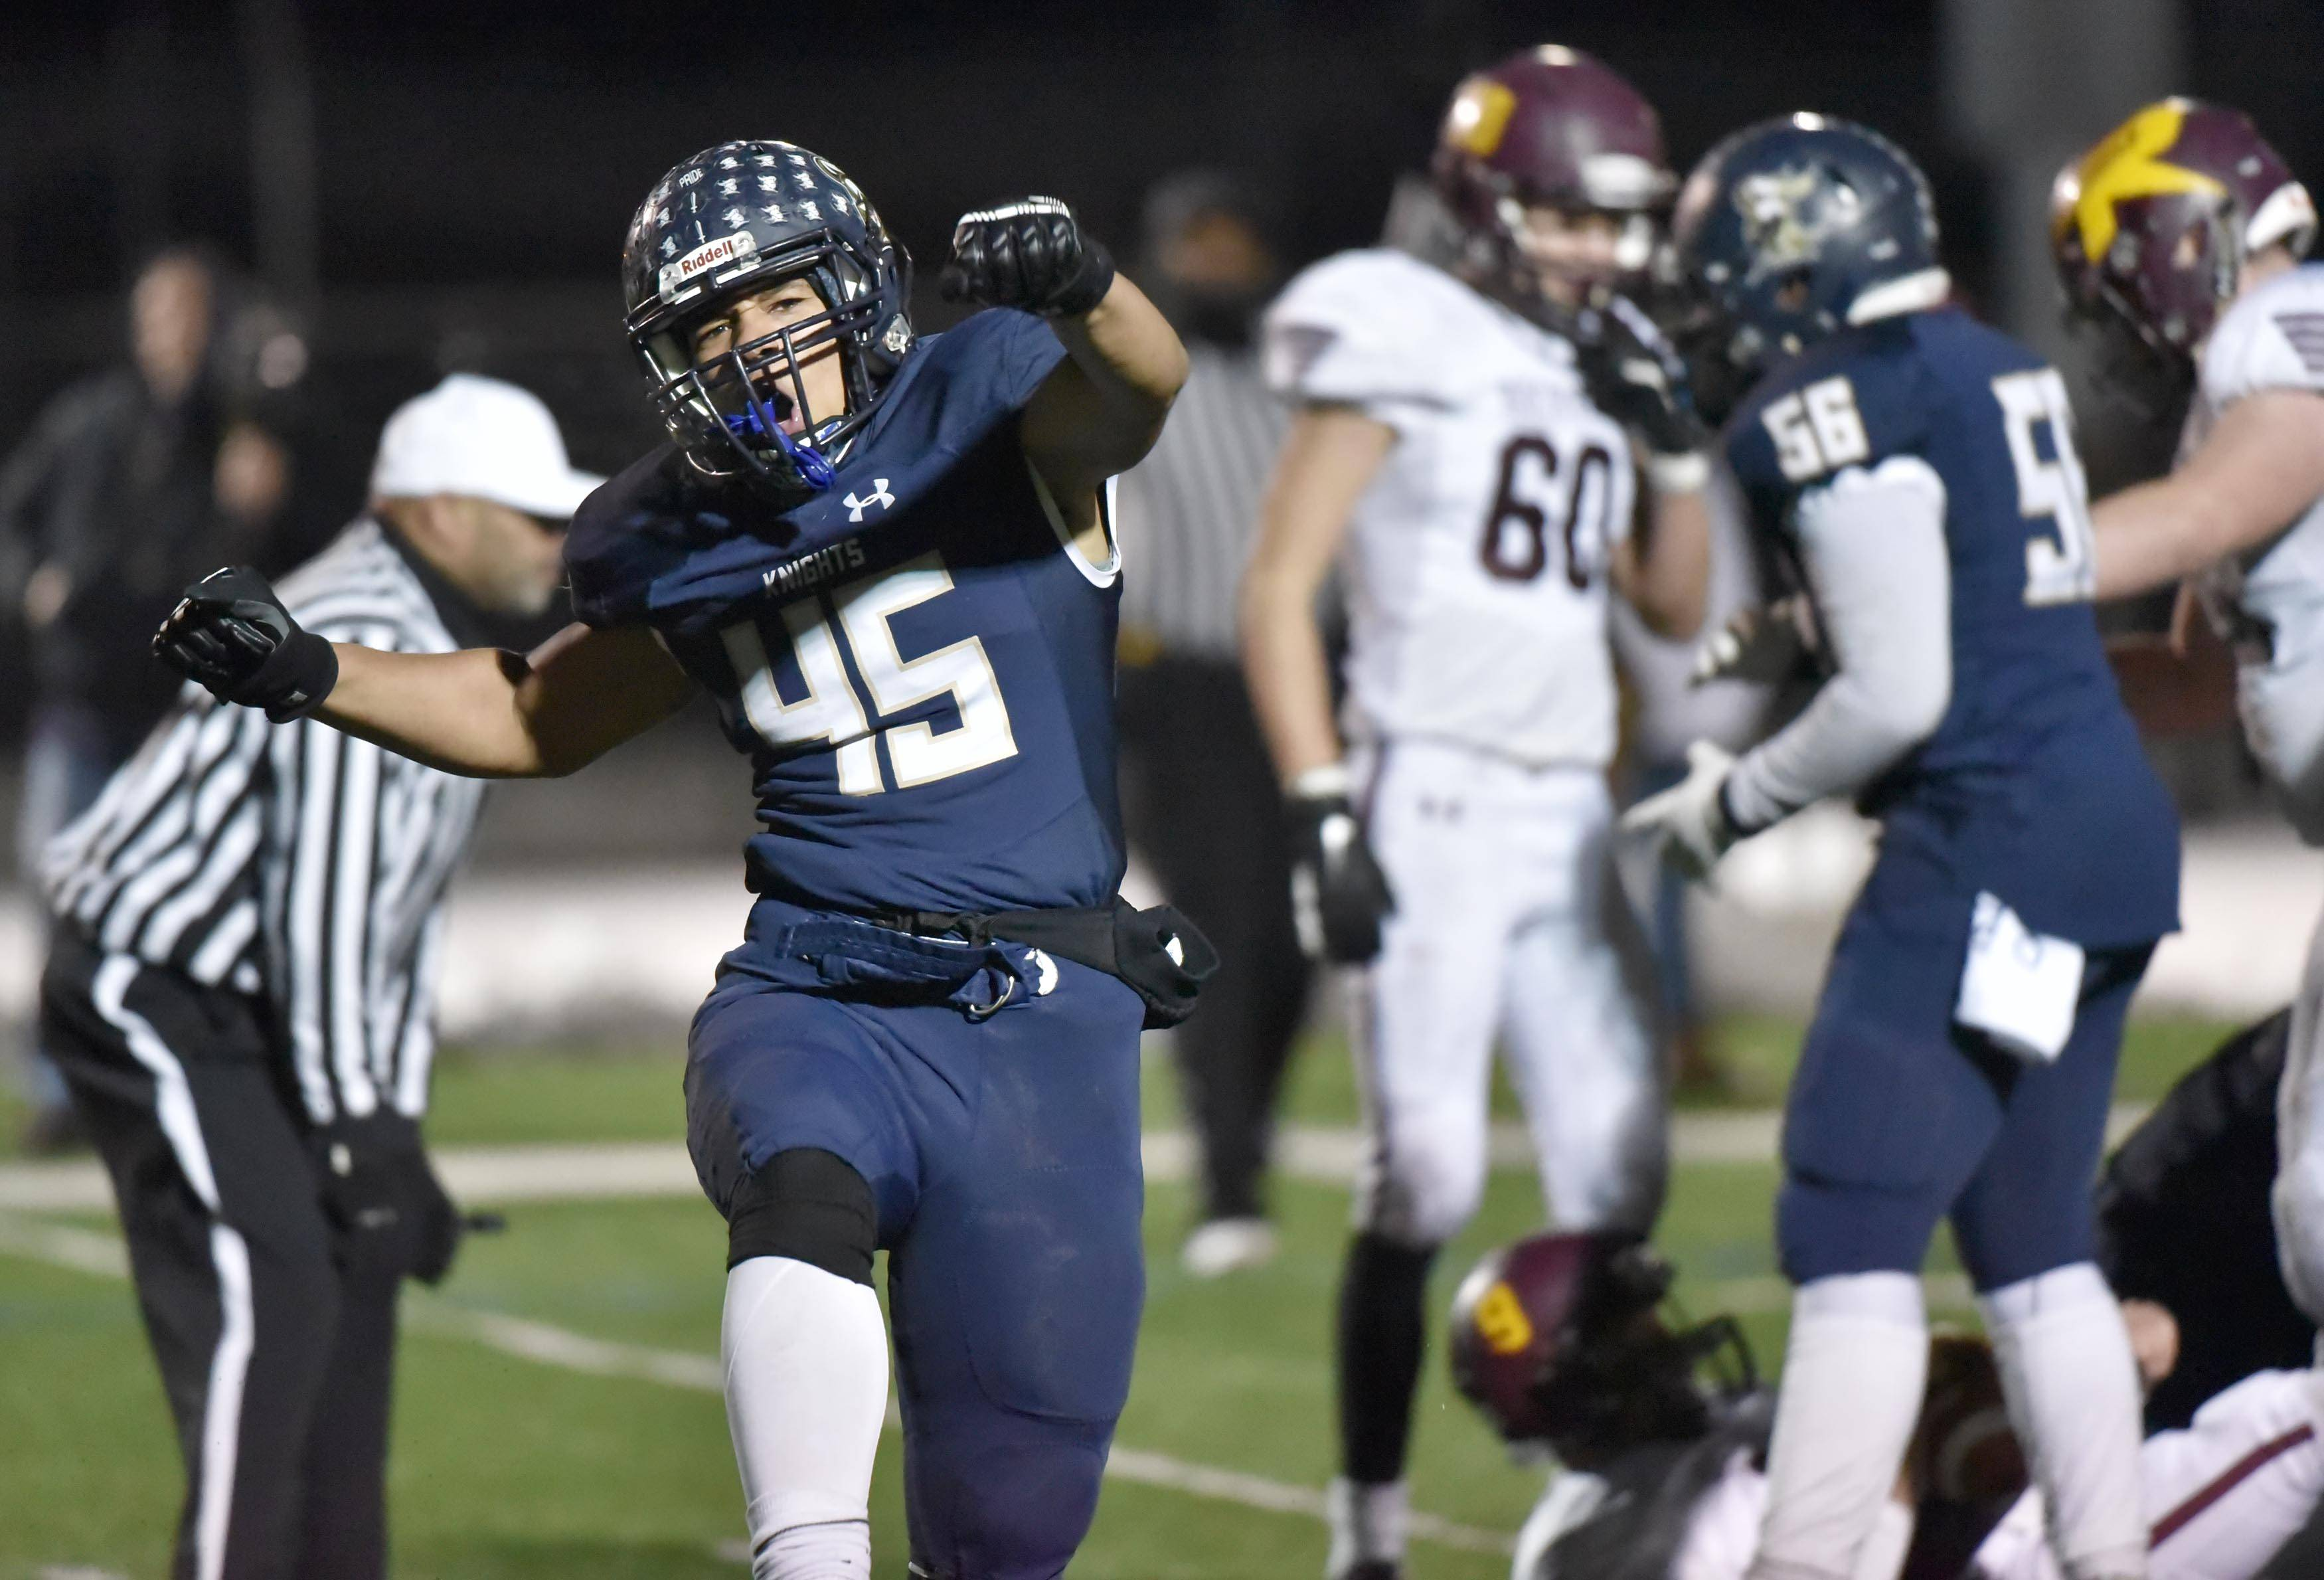 IC Catholic's Corties Draper celebrates his sack of Richmond-Burton's Jacob Huber, along with teammate Kevin Akins in the last minutes of a semifinal football playoff game Saturday in Elmhurst.